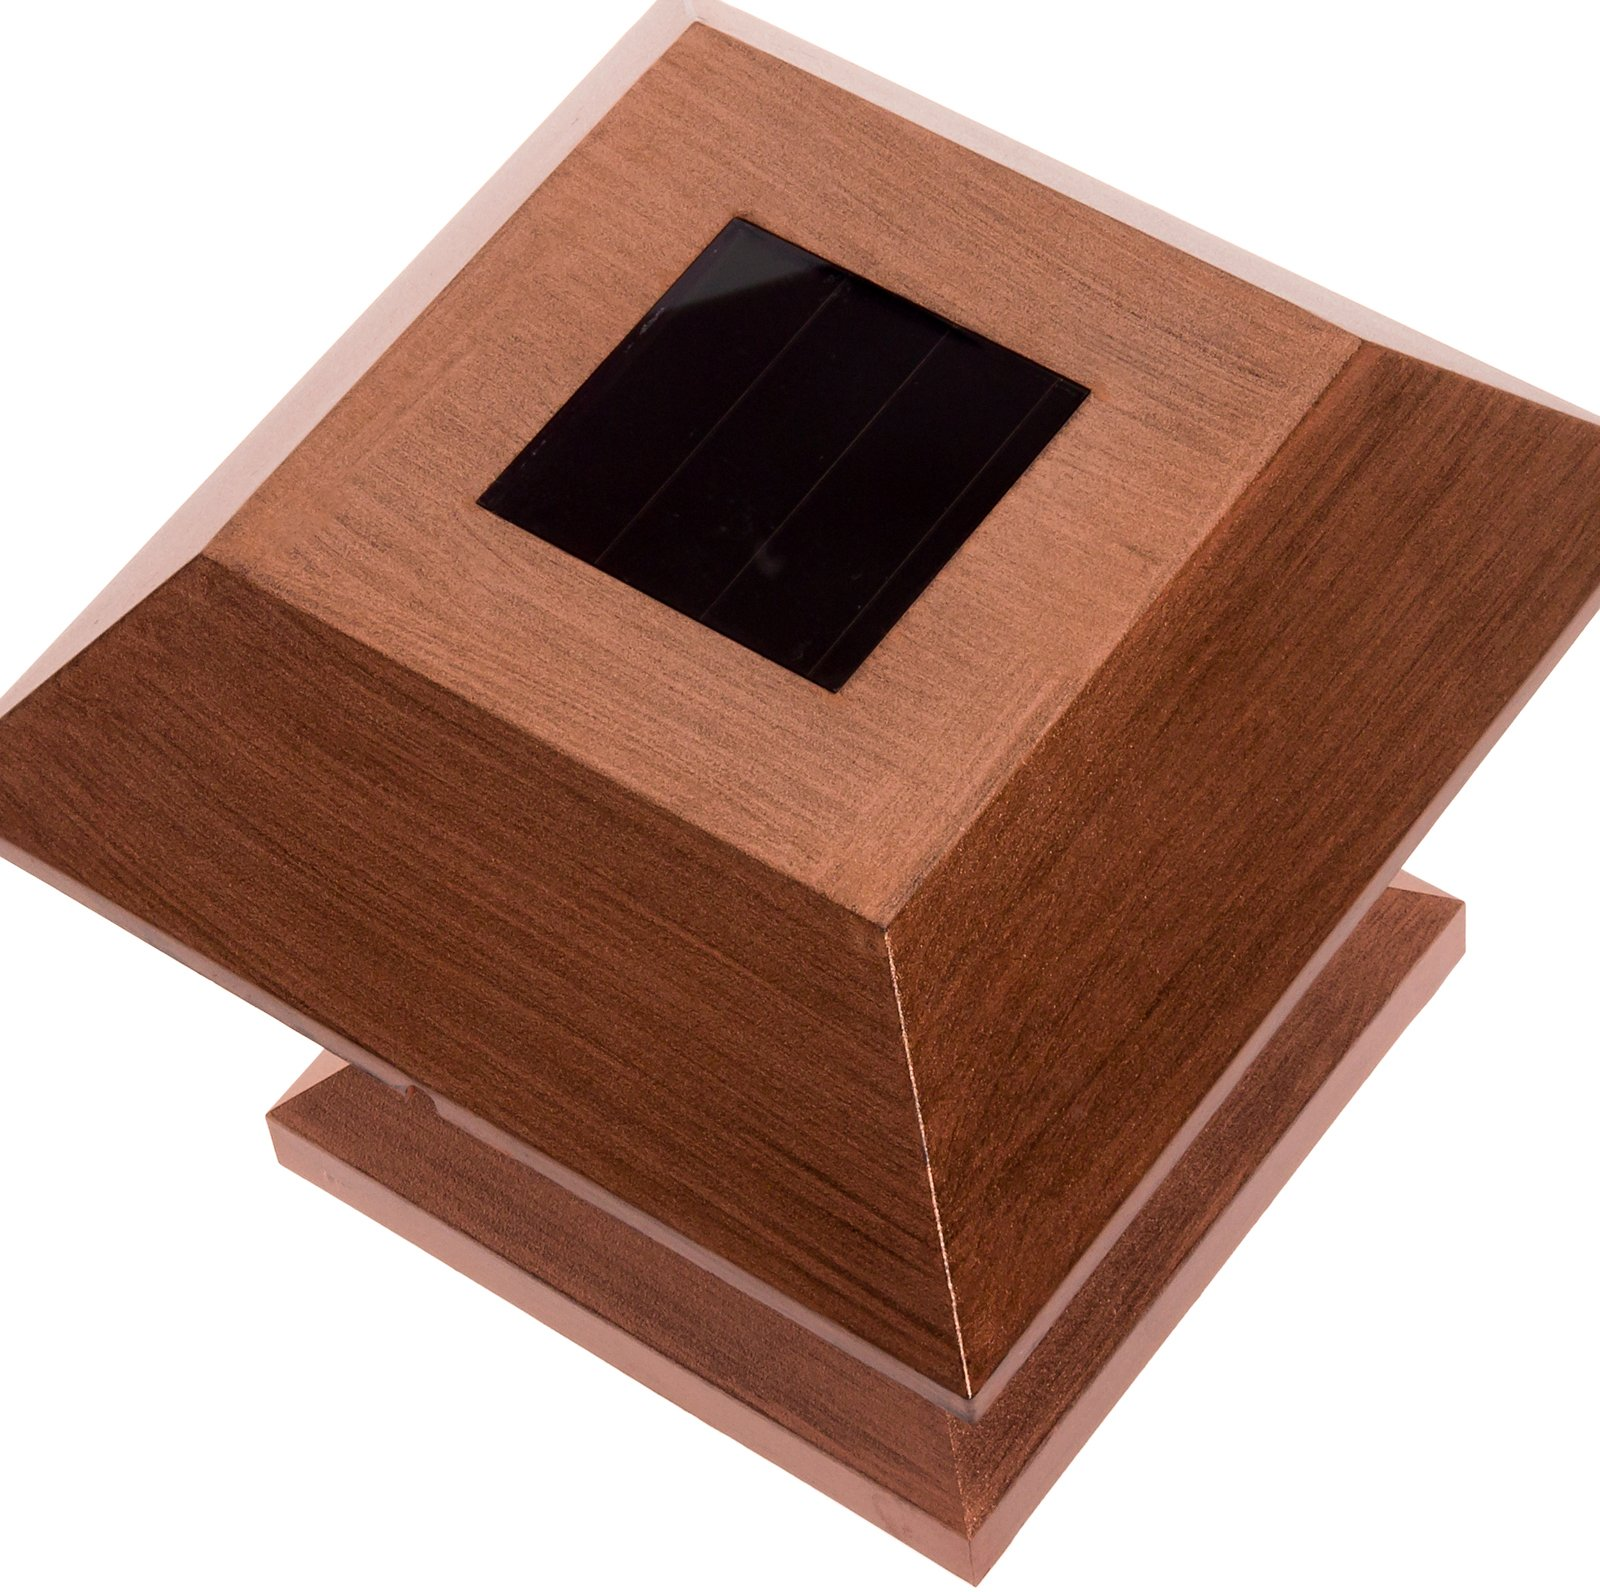 GreenLighting Outdoor Summit Solar Post Cap Light for 4x4 Wood Posts 12 Pack (Brushed Copper) by GreenLighting (Image #3)